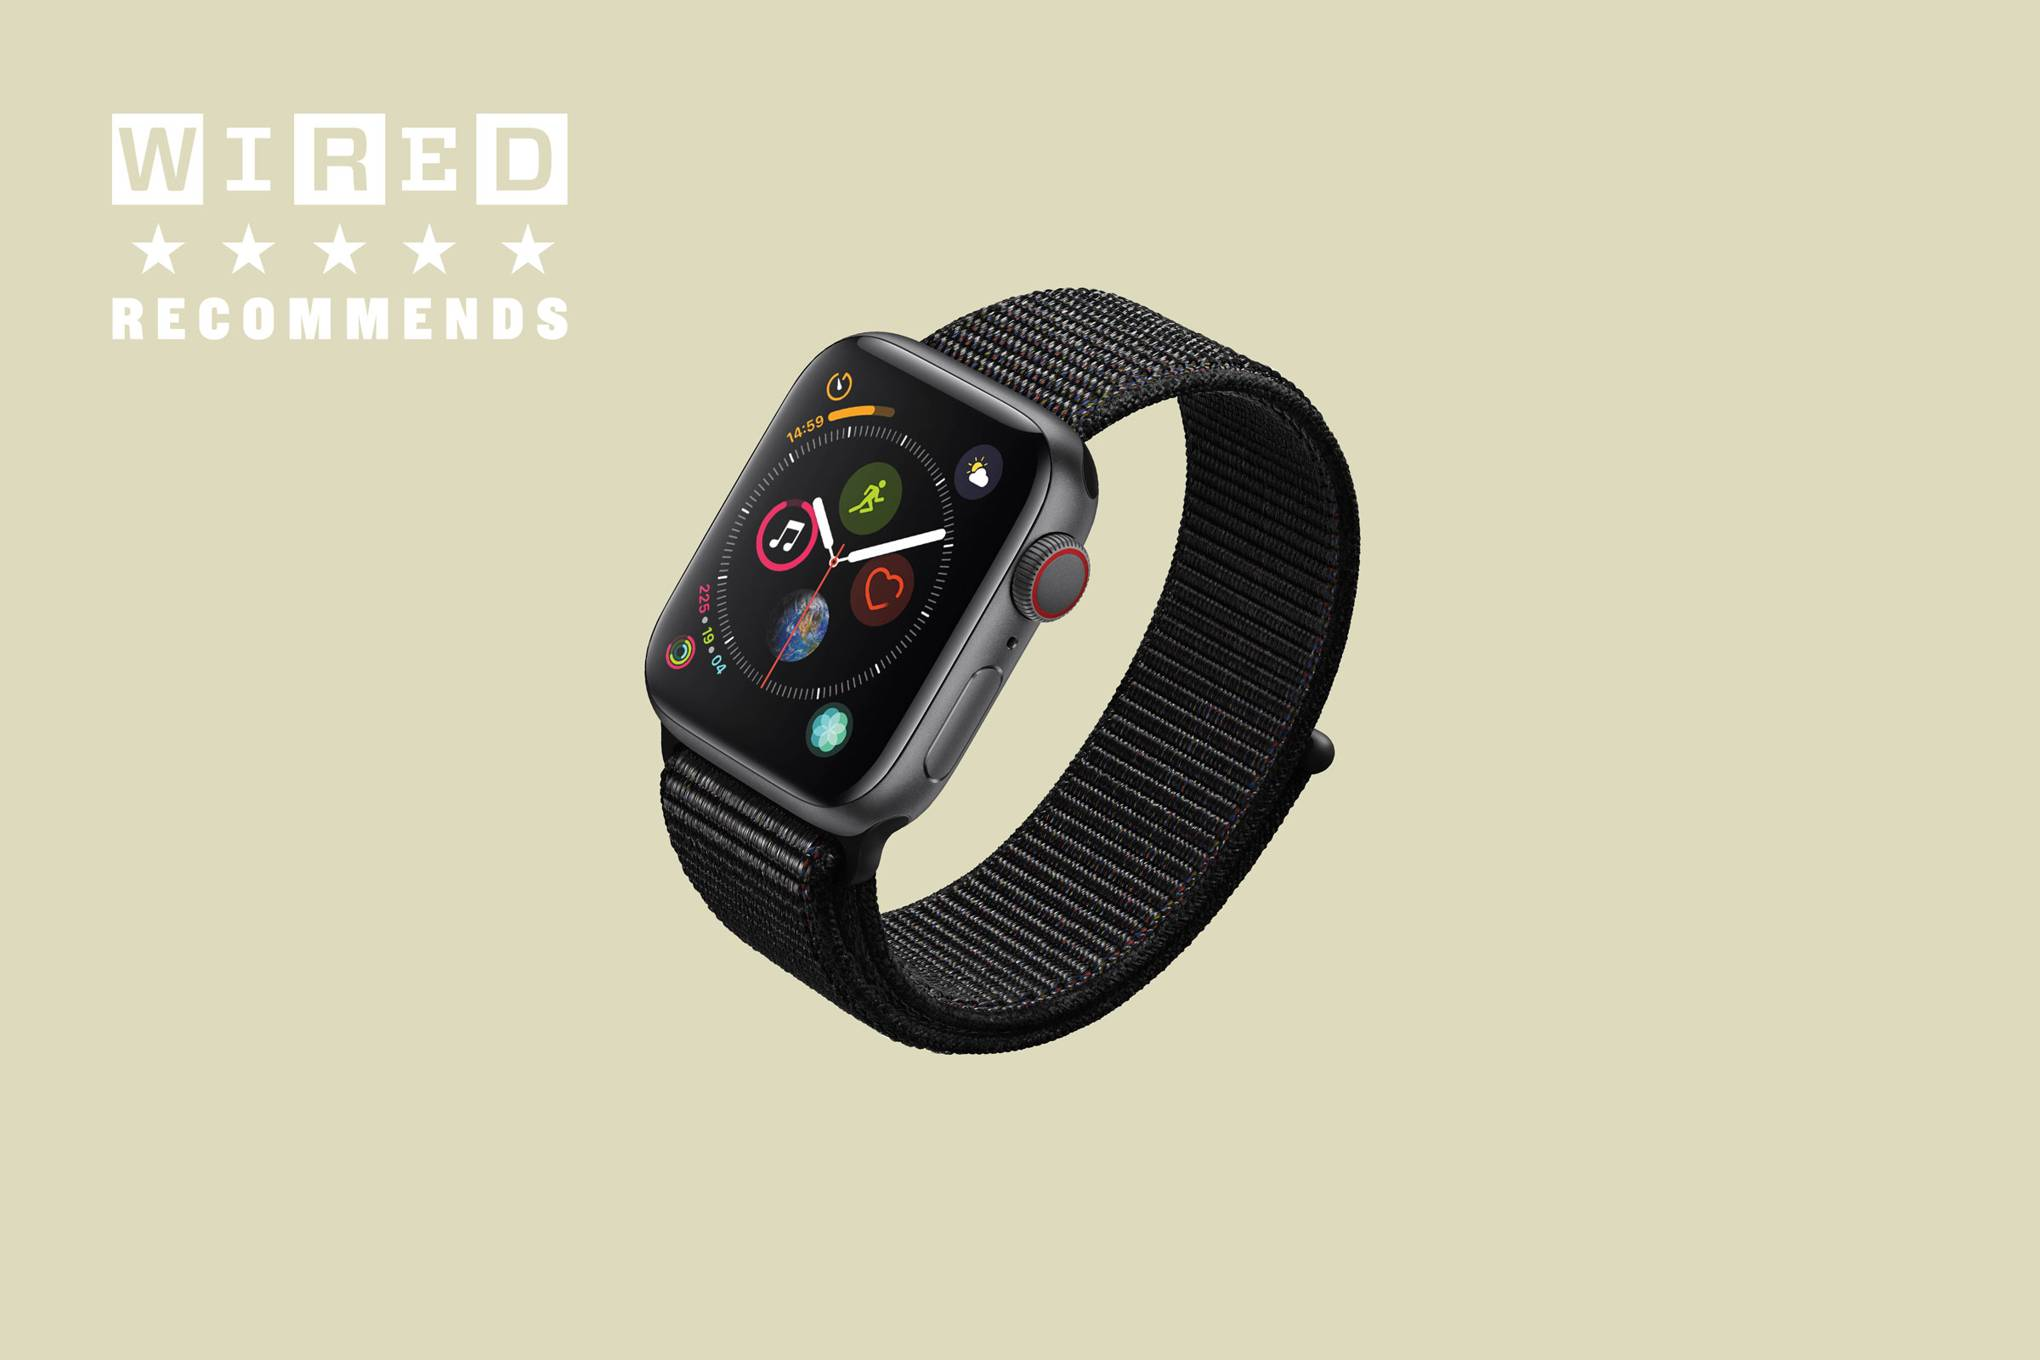 7dbd7fb10 Best Smartwatch 2019: The best smartwatches for Android and iPhone | WIRED  UK